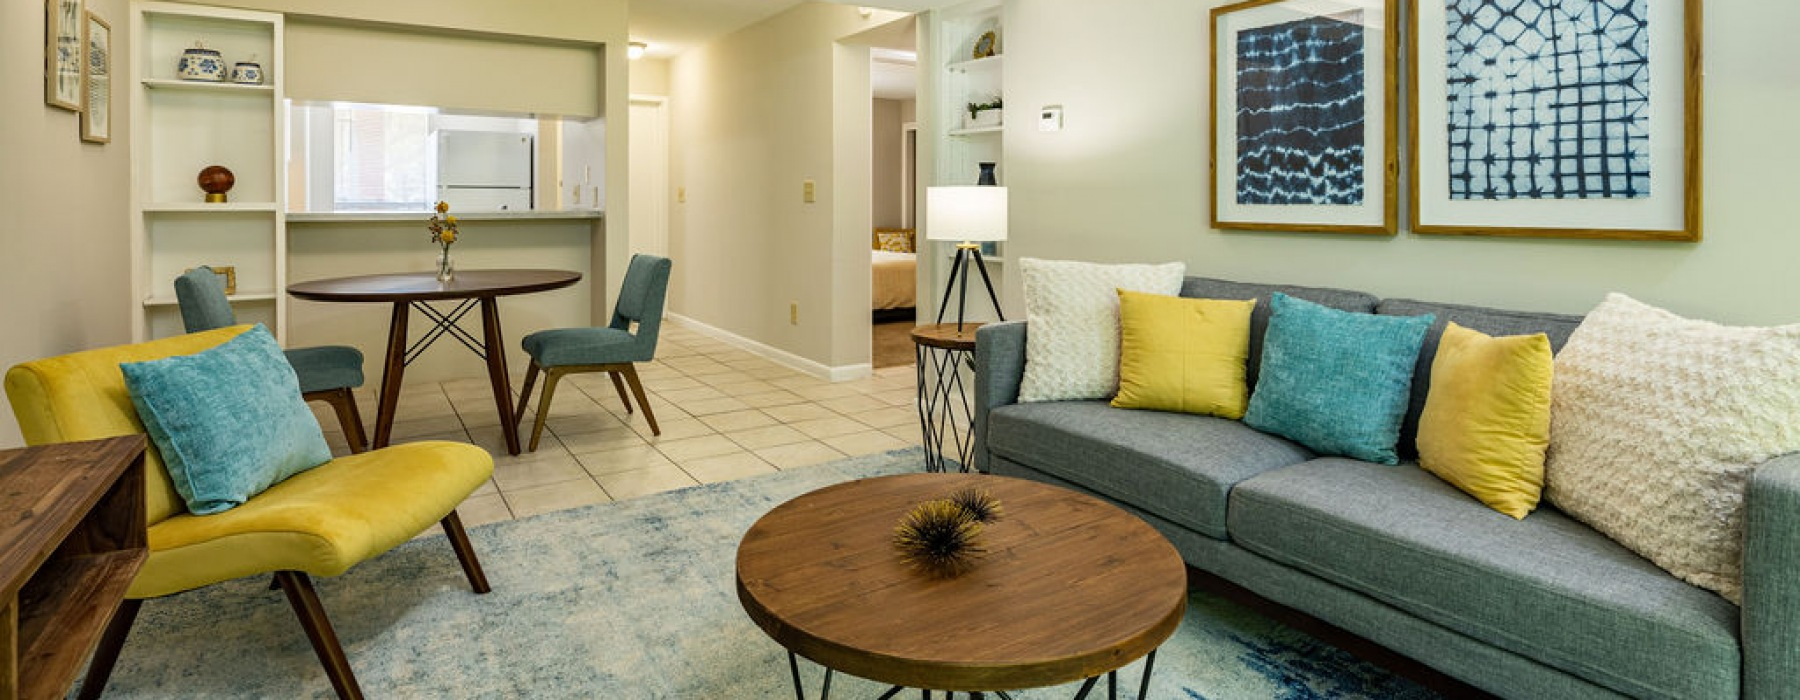 The Pointe at Clearwater Model Apartment Living Room with Furnishings